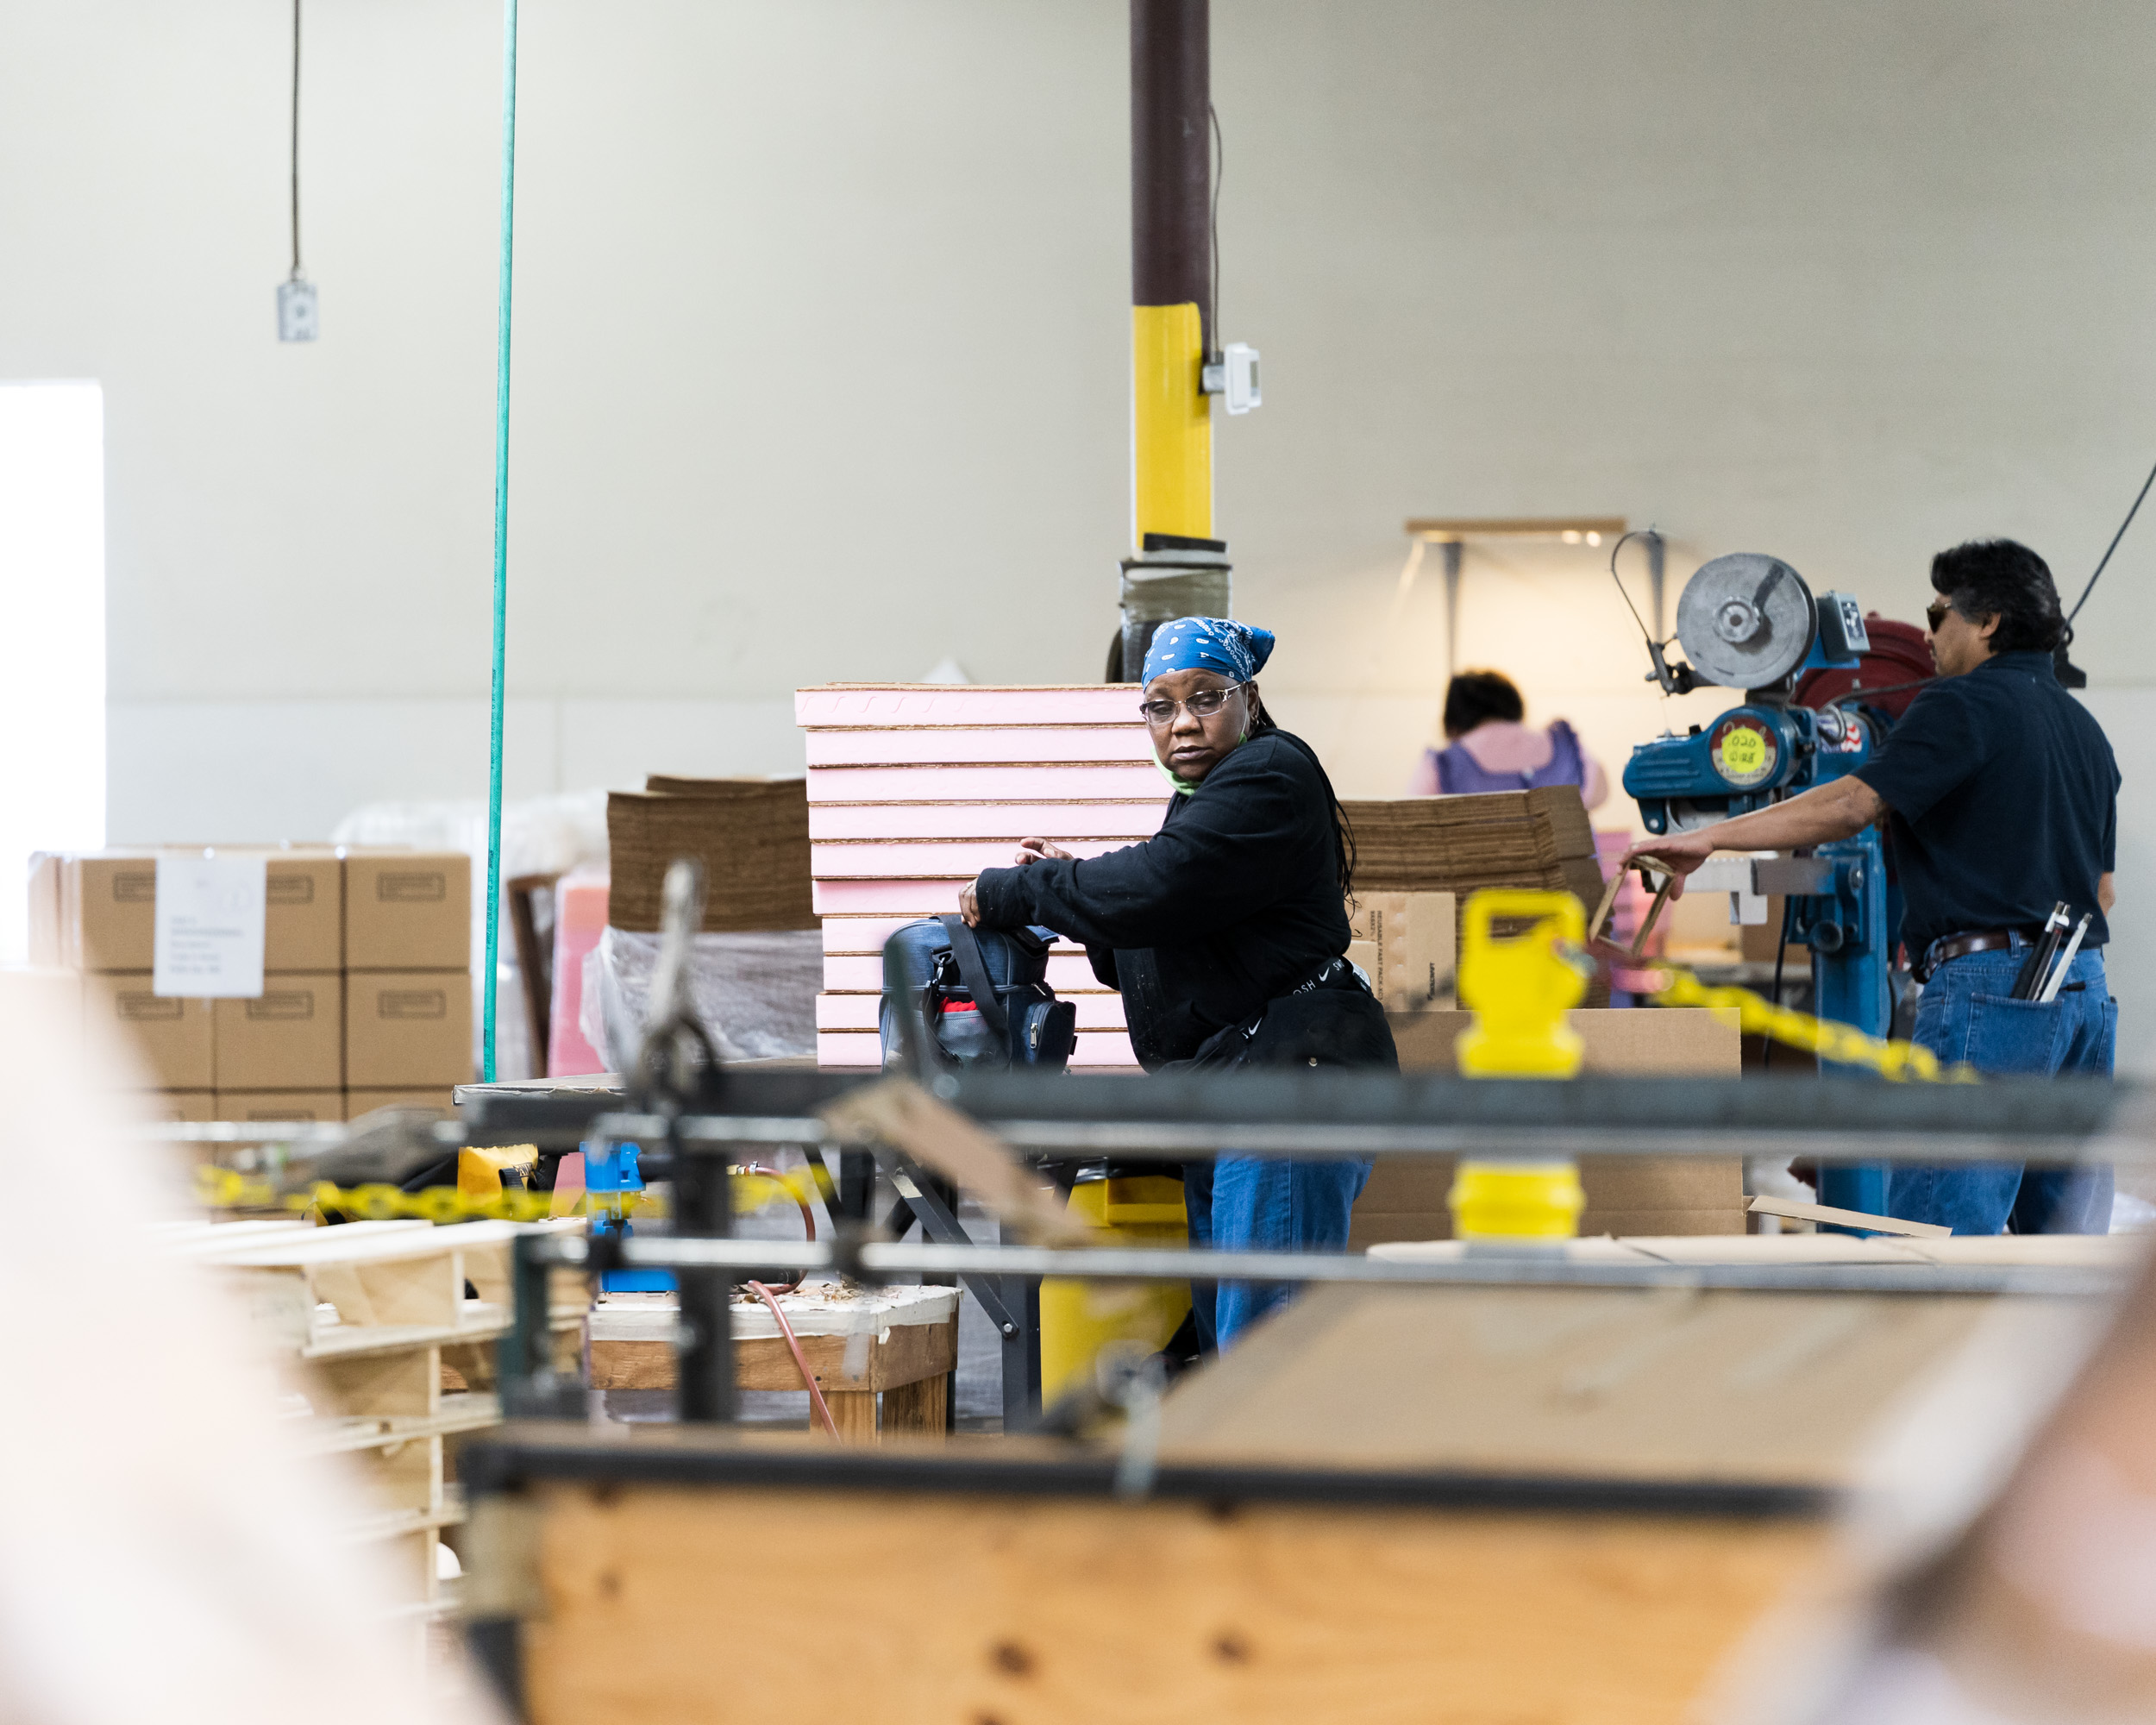 Workers using machinery in a warehouse